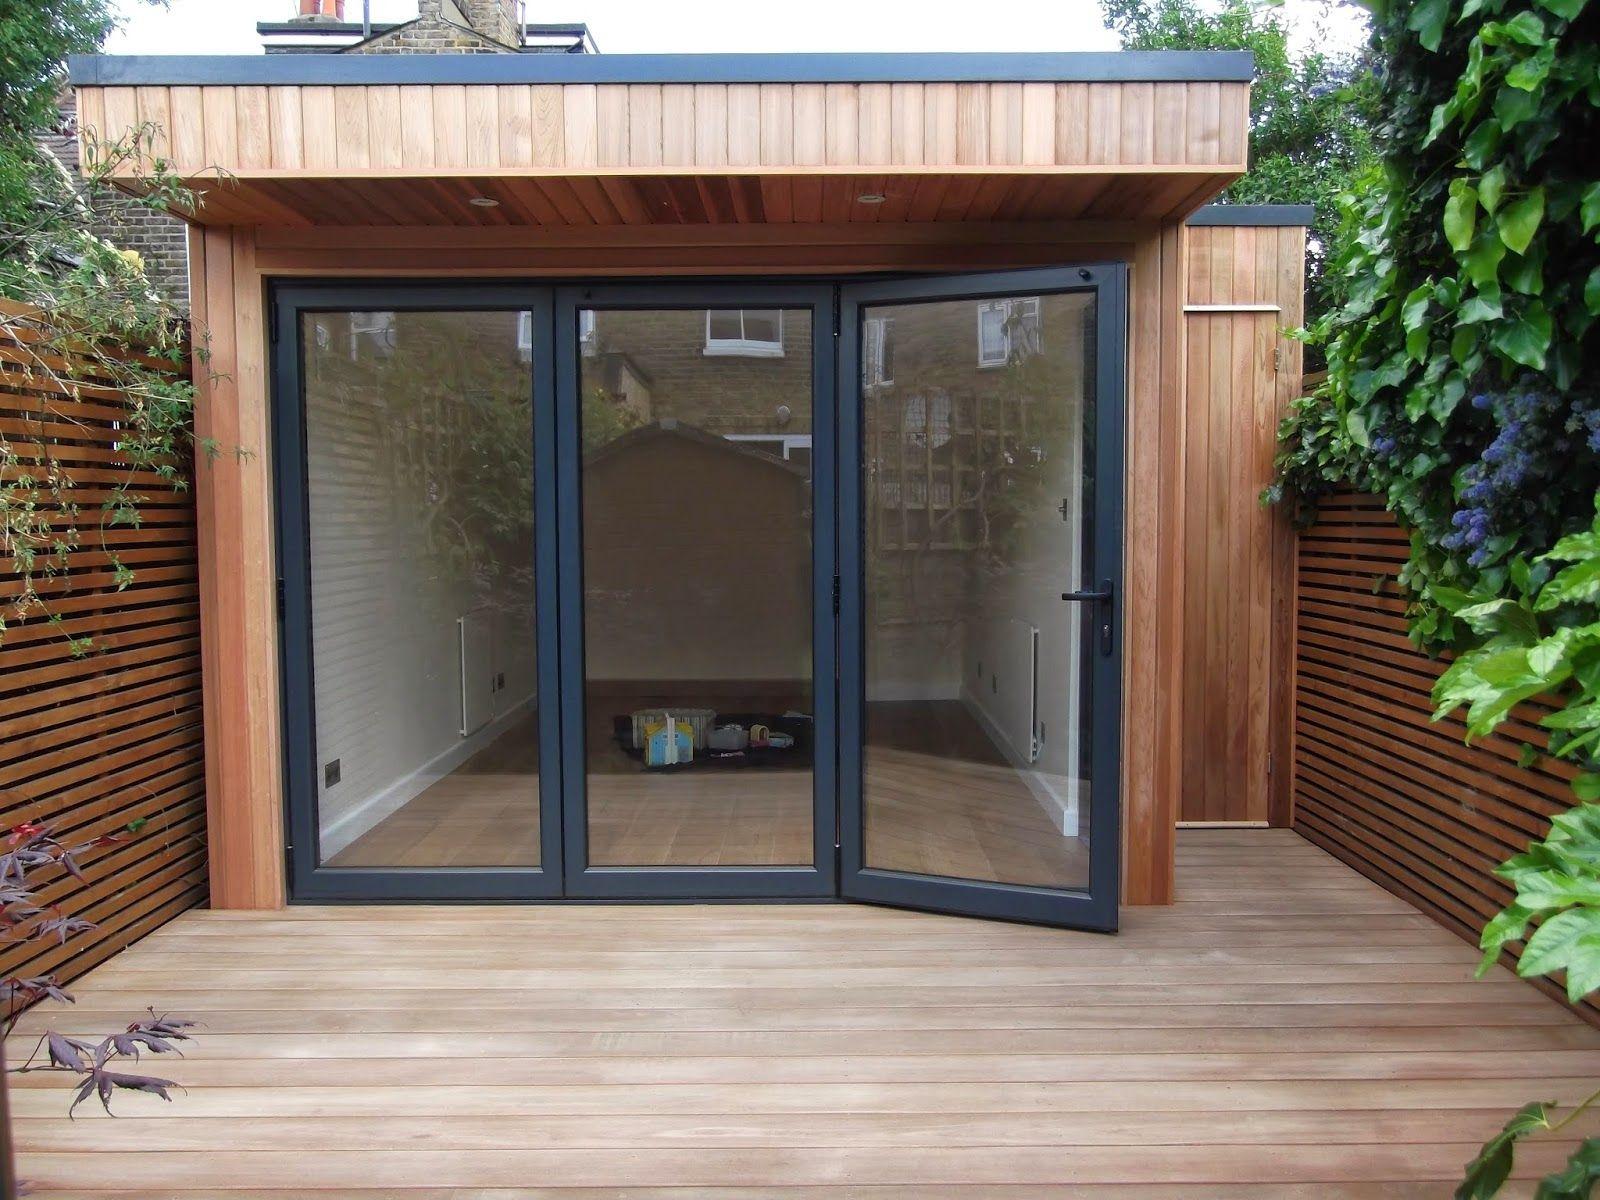 Outdoor Office In London With Integral Storage And Cedar Cladding